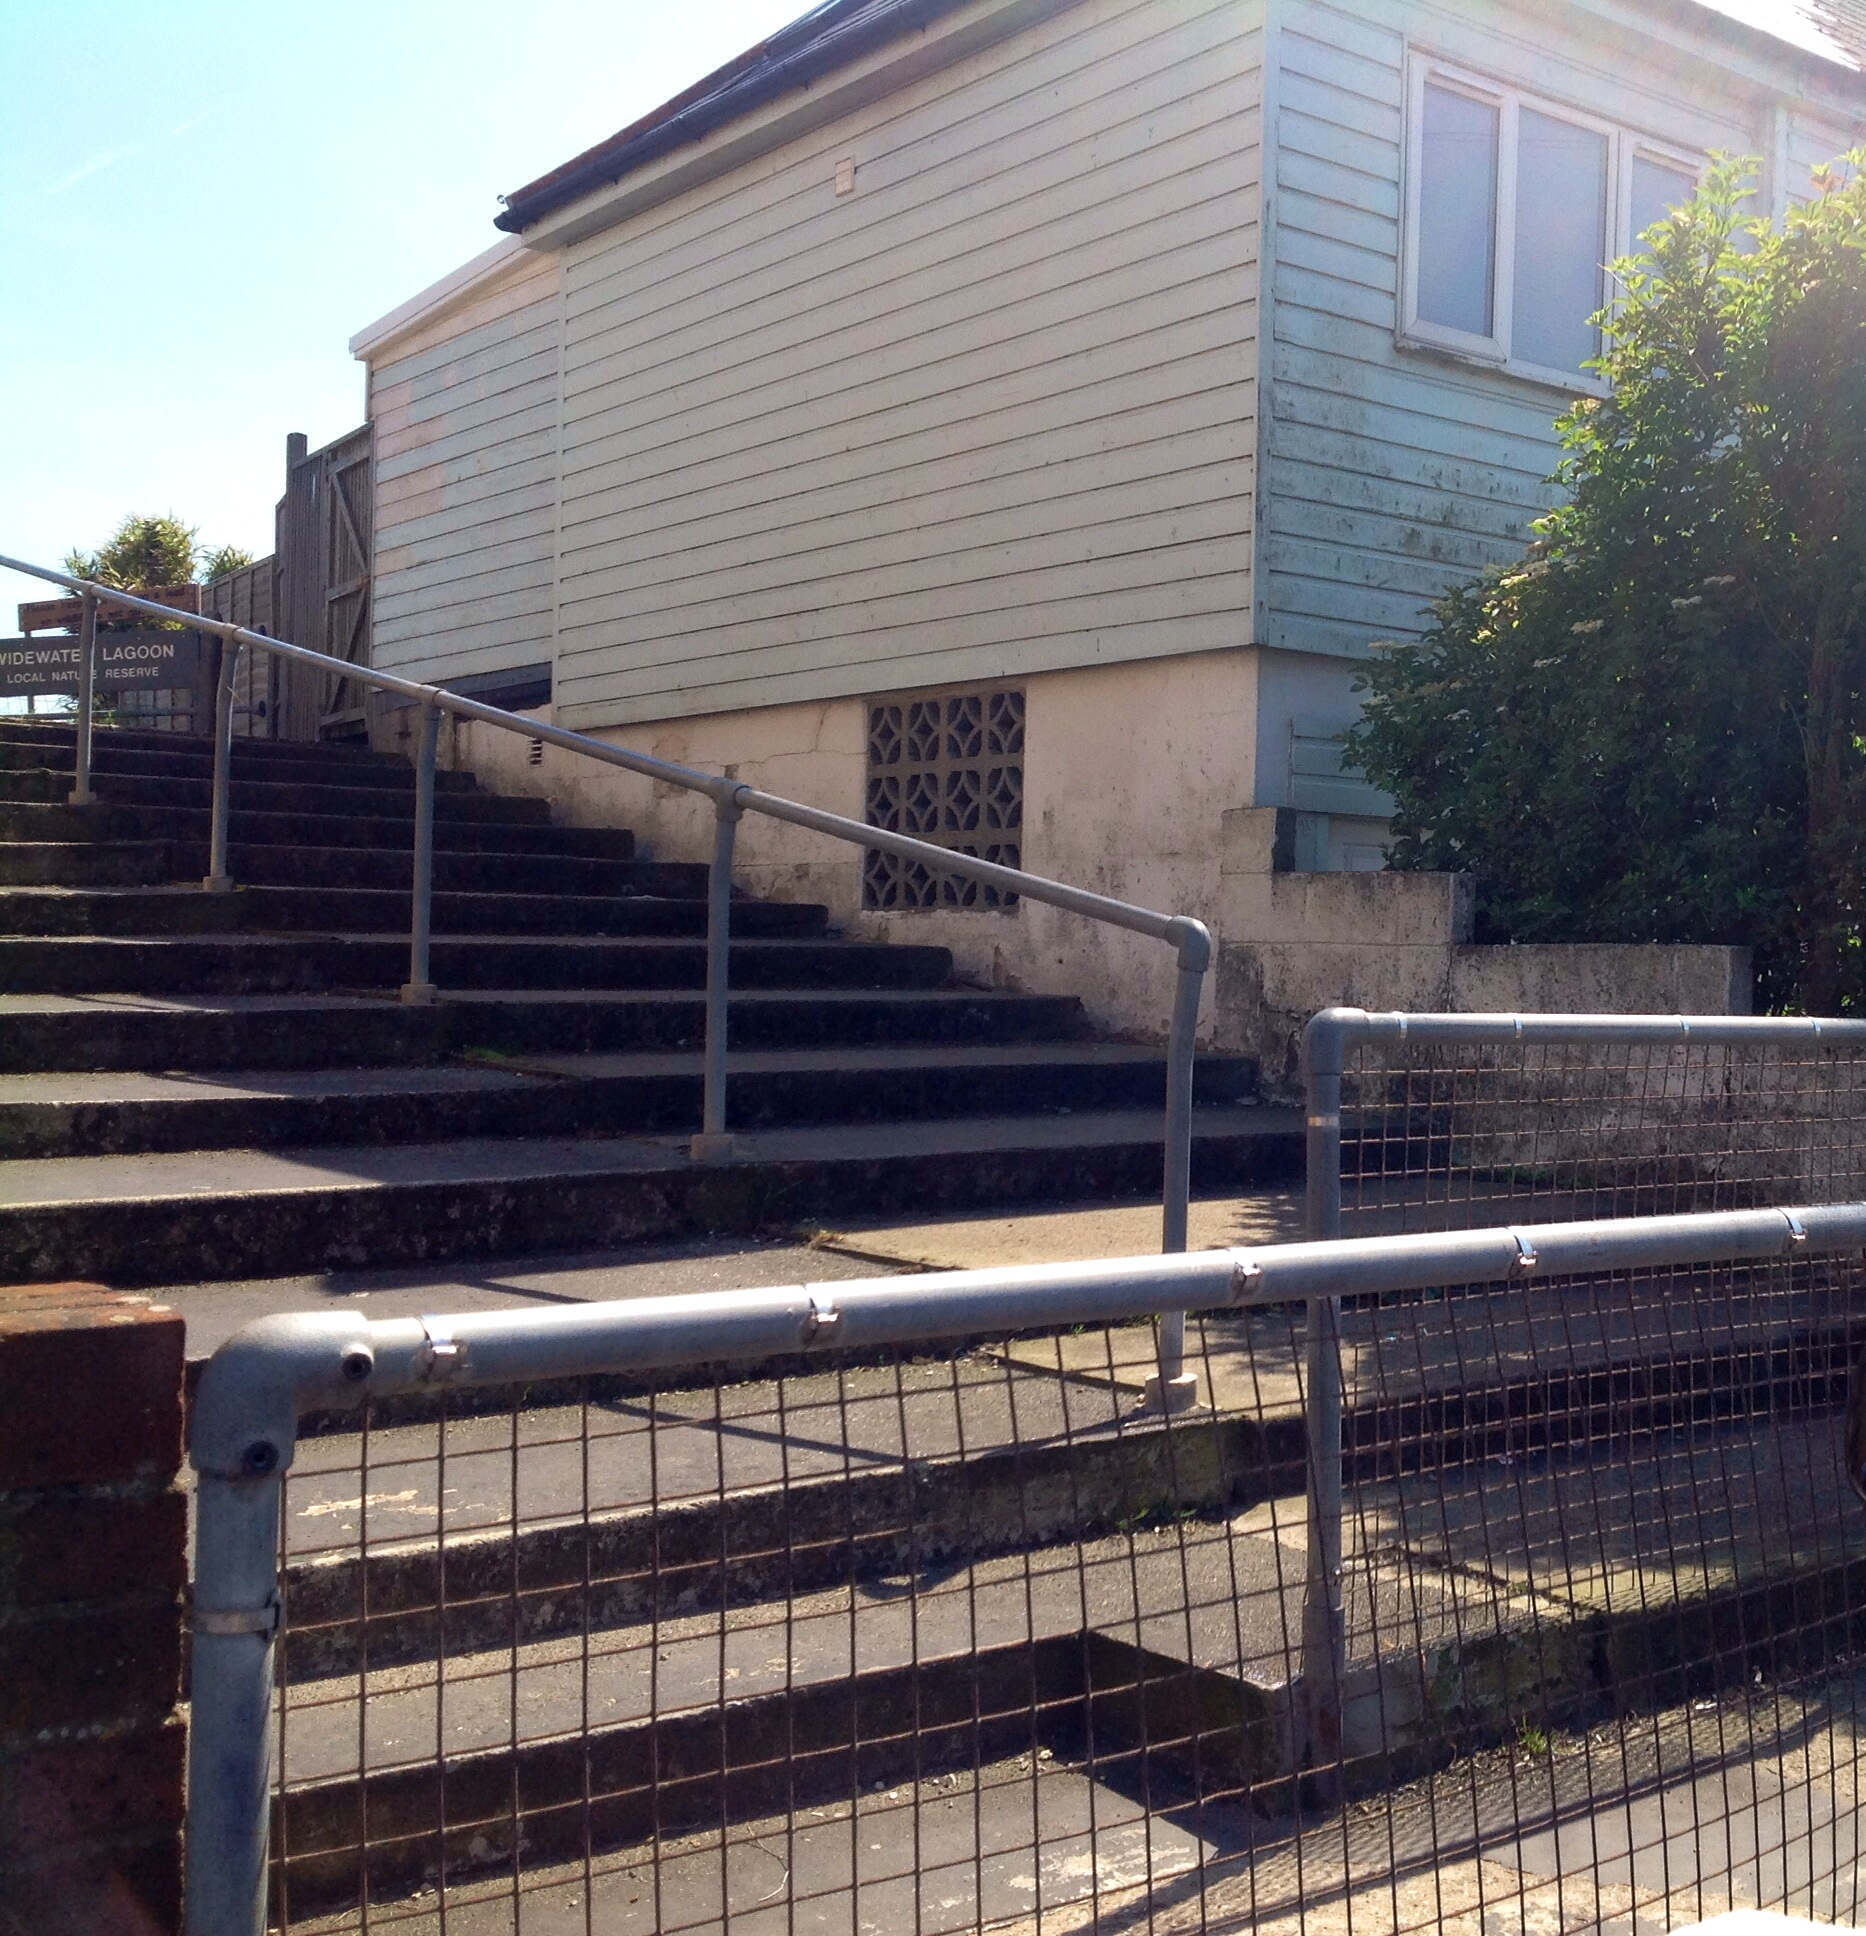 The steps to Widewater our less able residents can no longer manage.